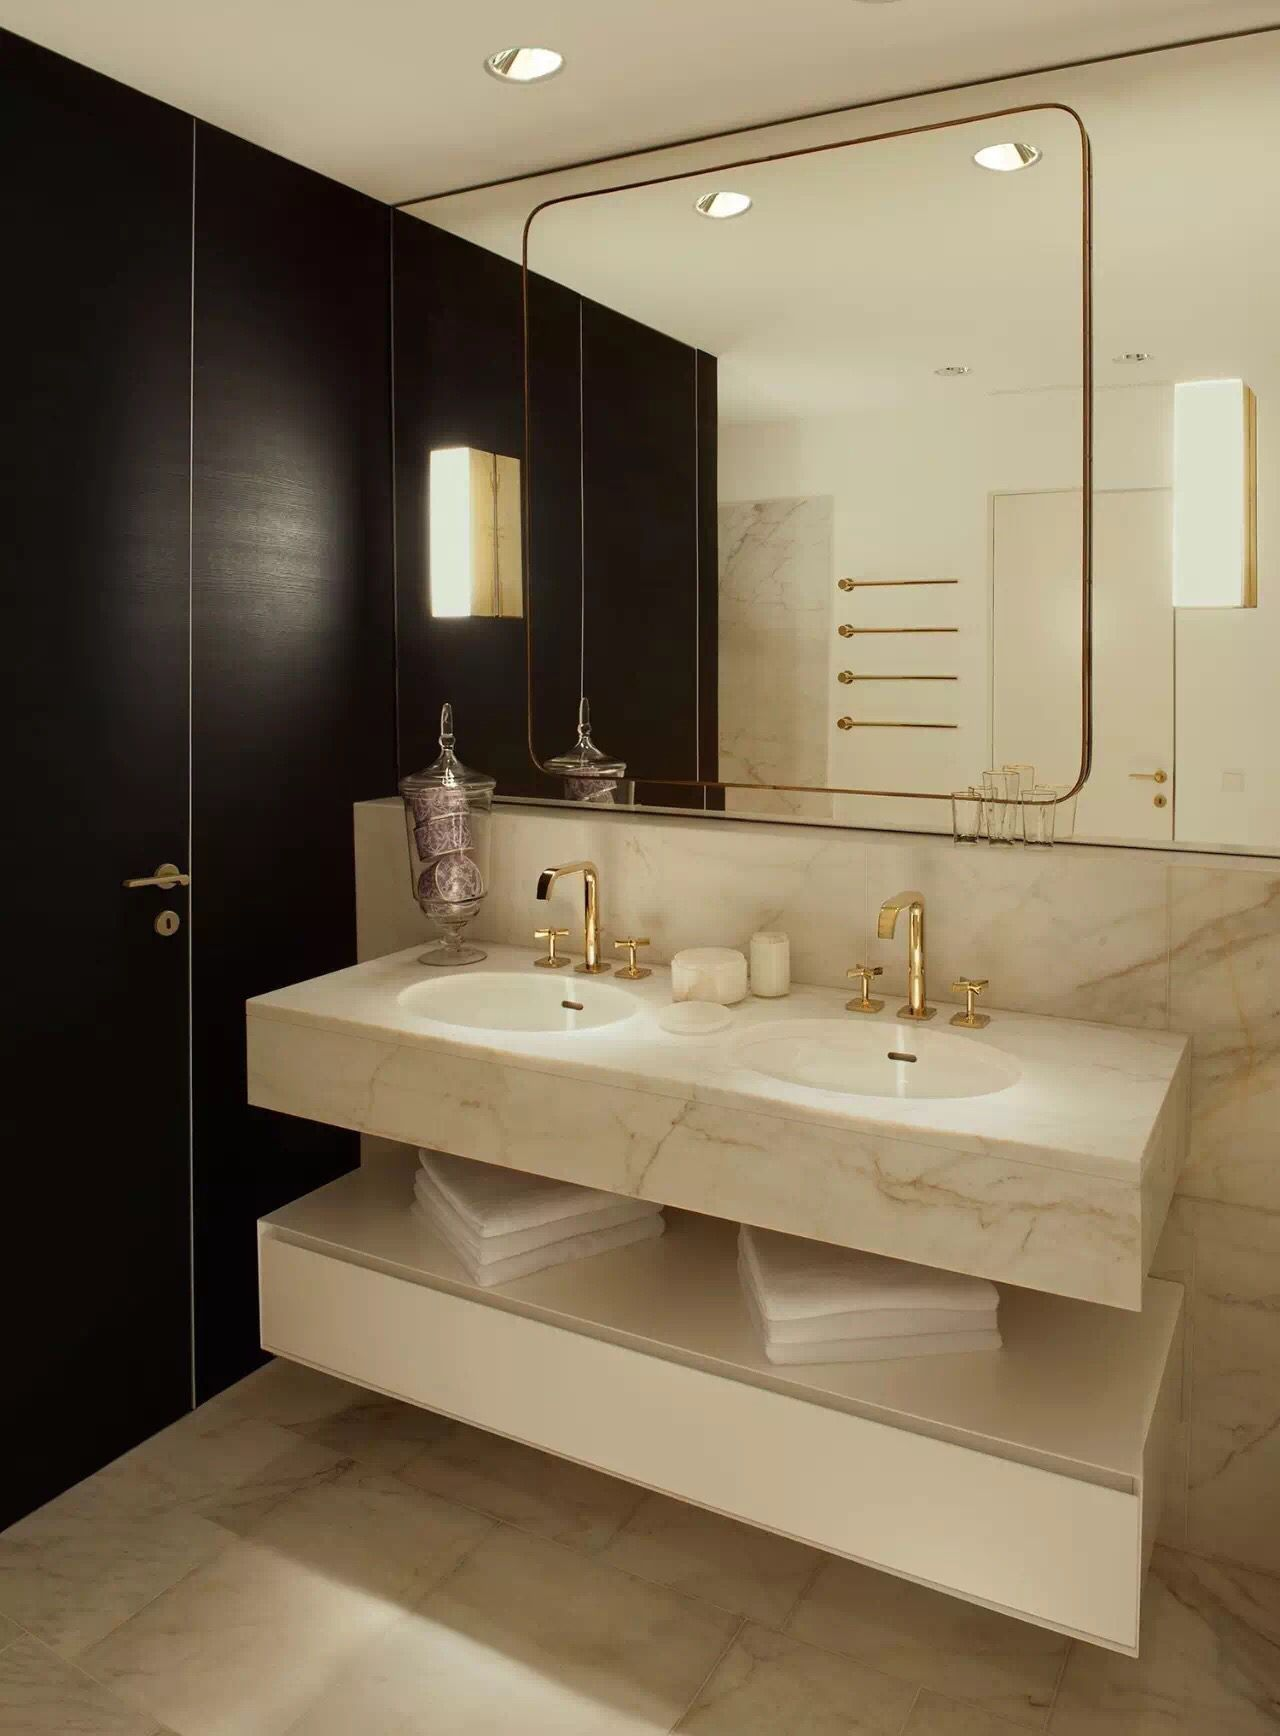 Contemporary Art Sites The master bath inside designer Kate Hume us model apartment for Elbphilharmonie Hamburg us new mixed use development by Herzog u de Meuron